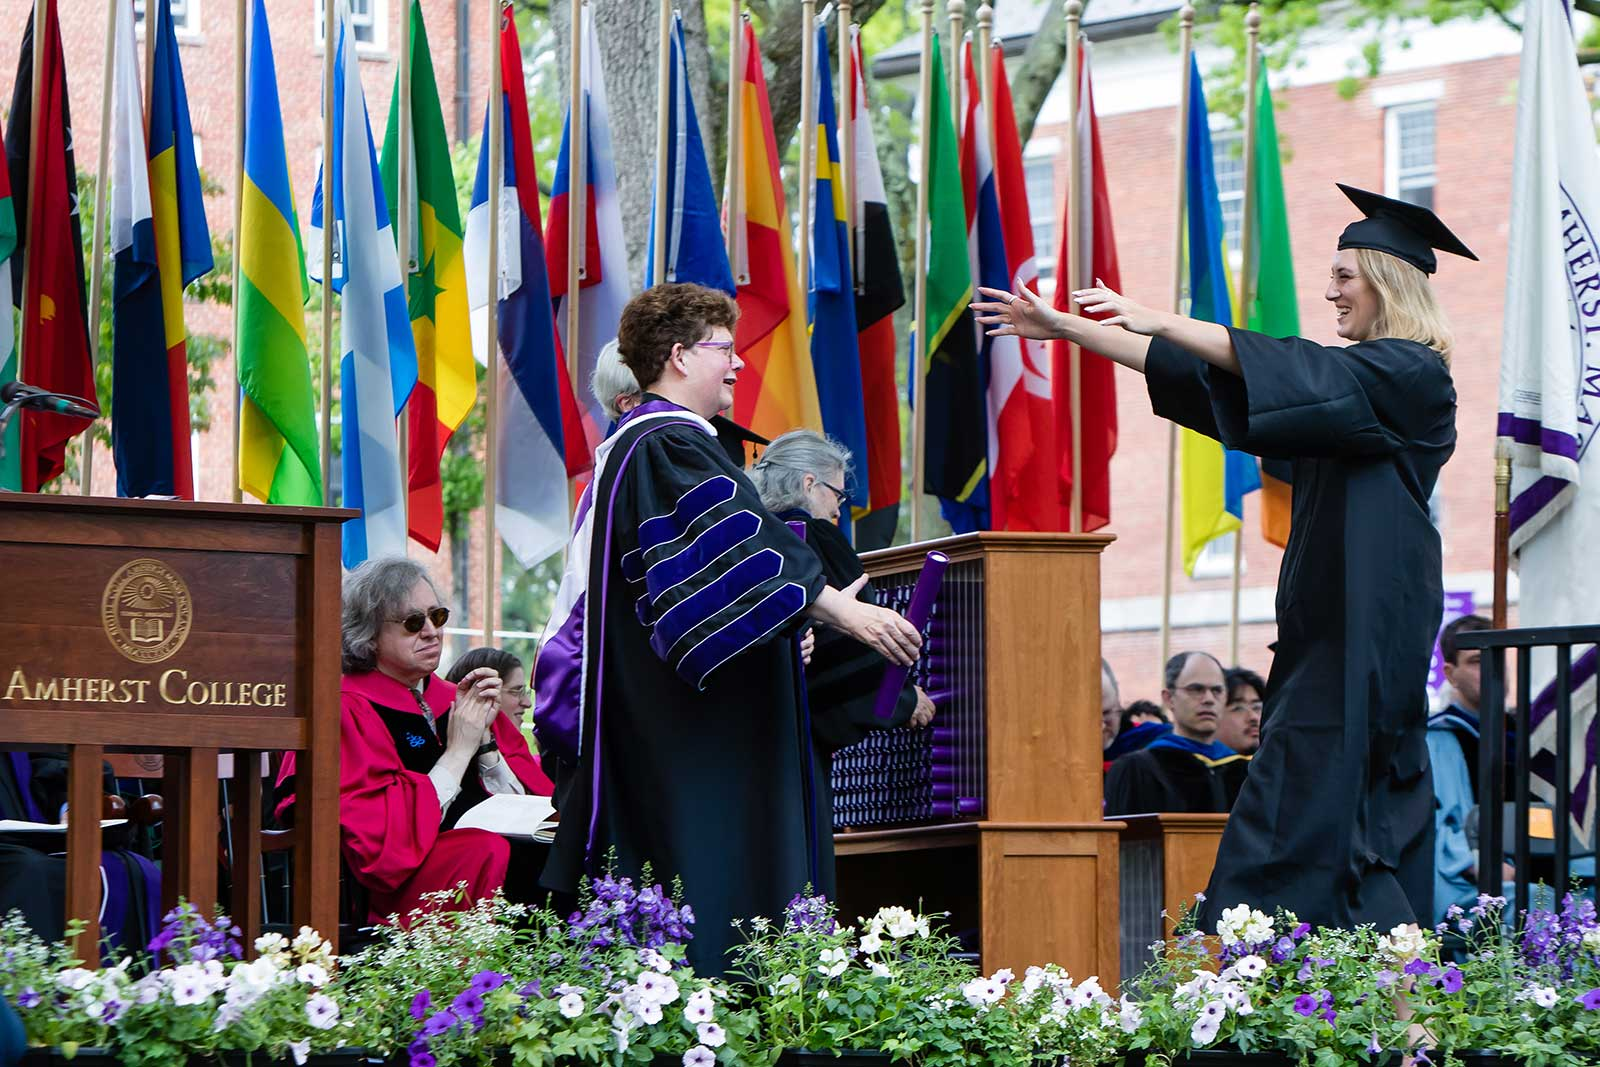 President Martin embracing a new graduate